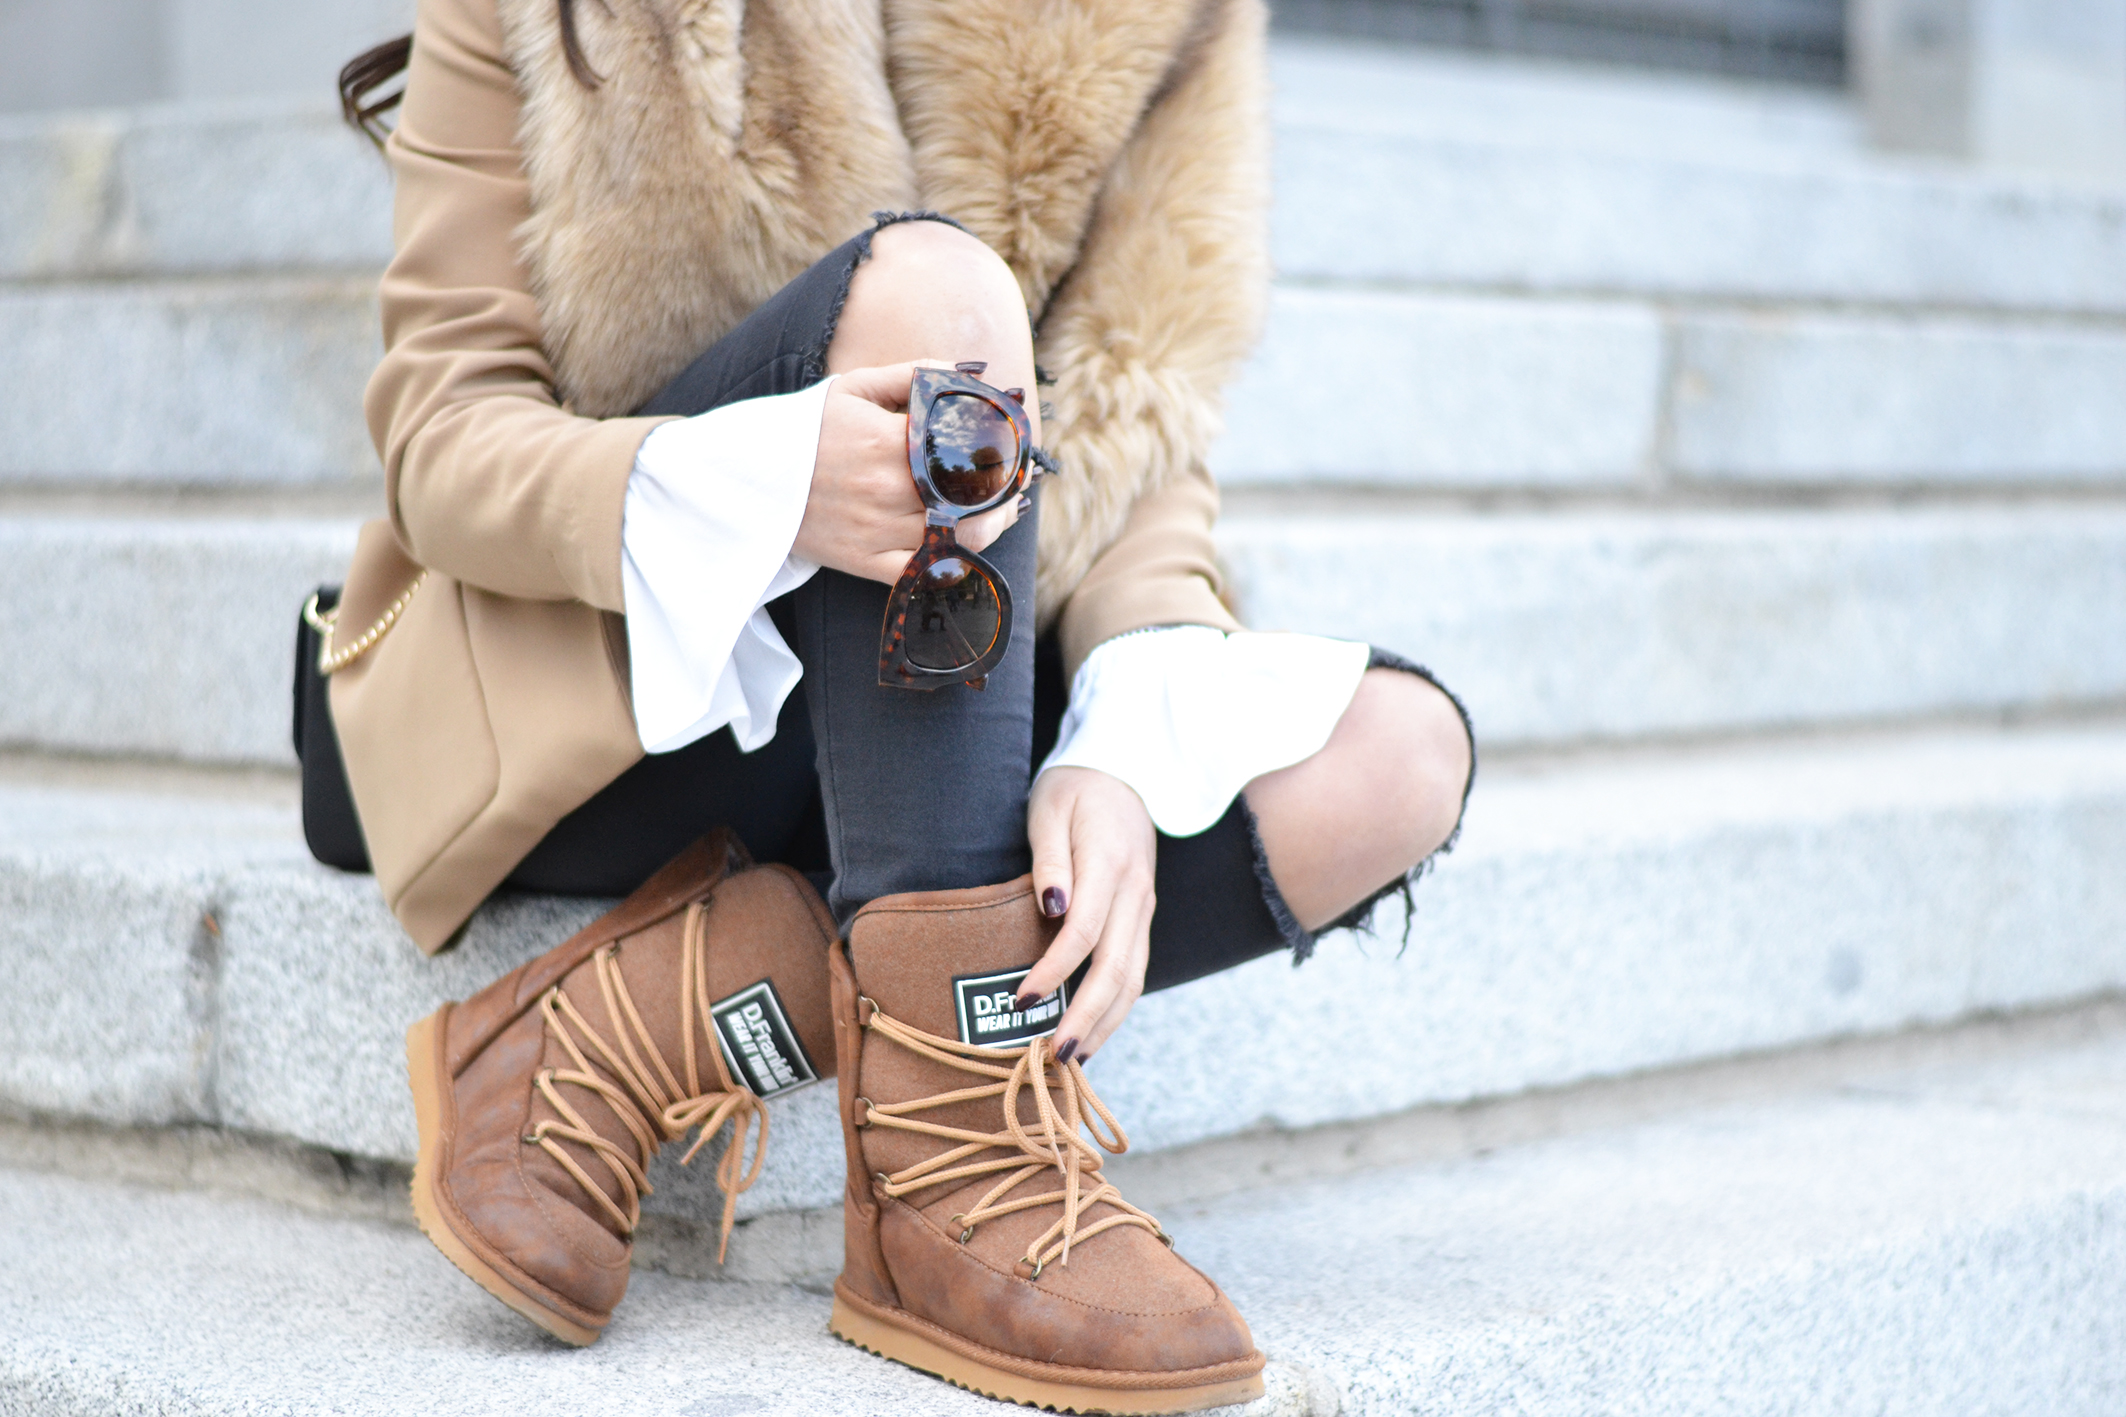 Snow boots outfit, apres ski boots, flared sleeves shirt, winter outfit, street style